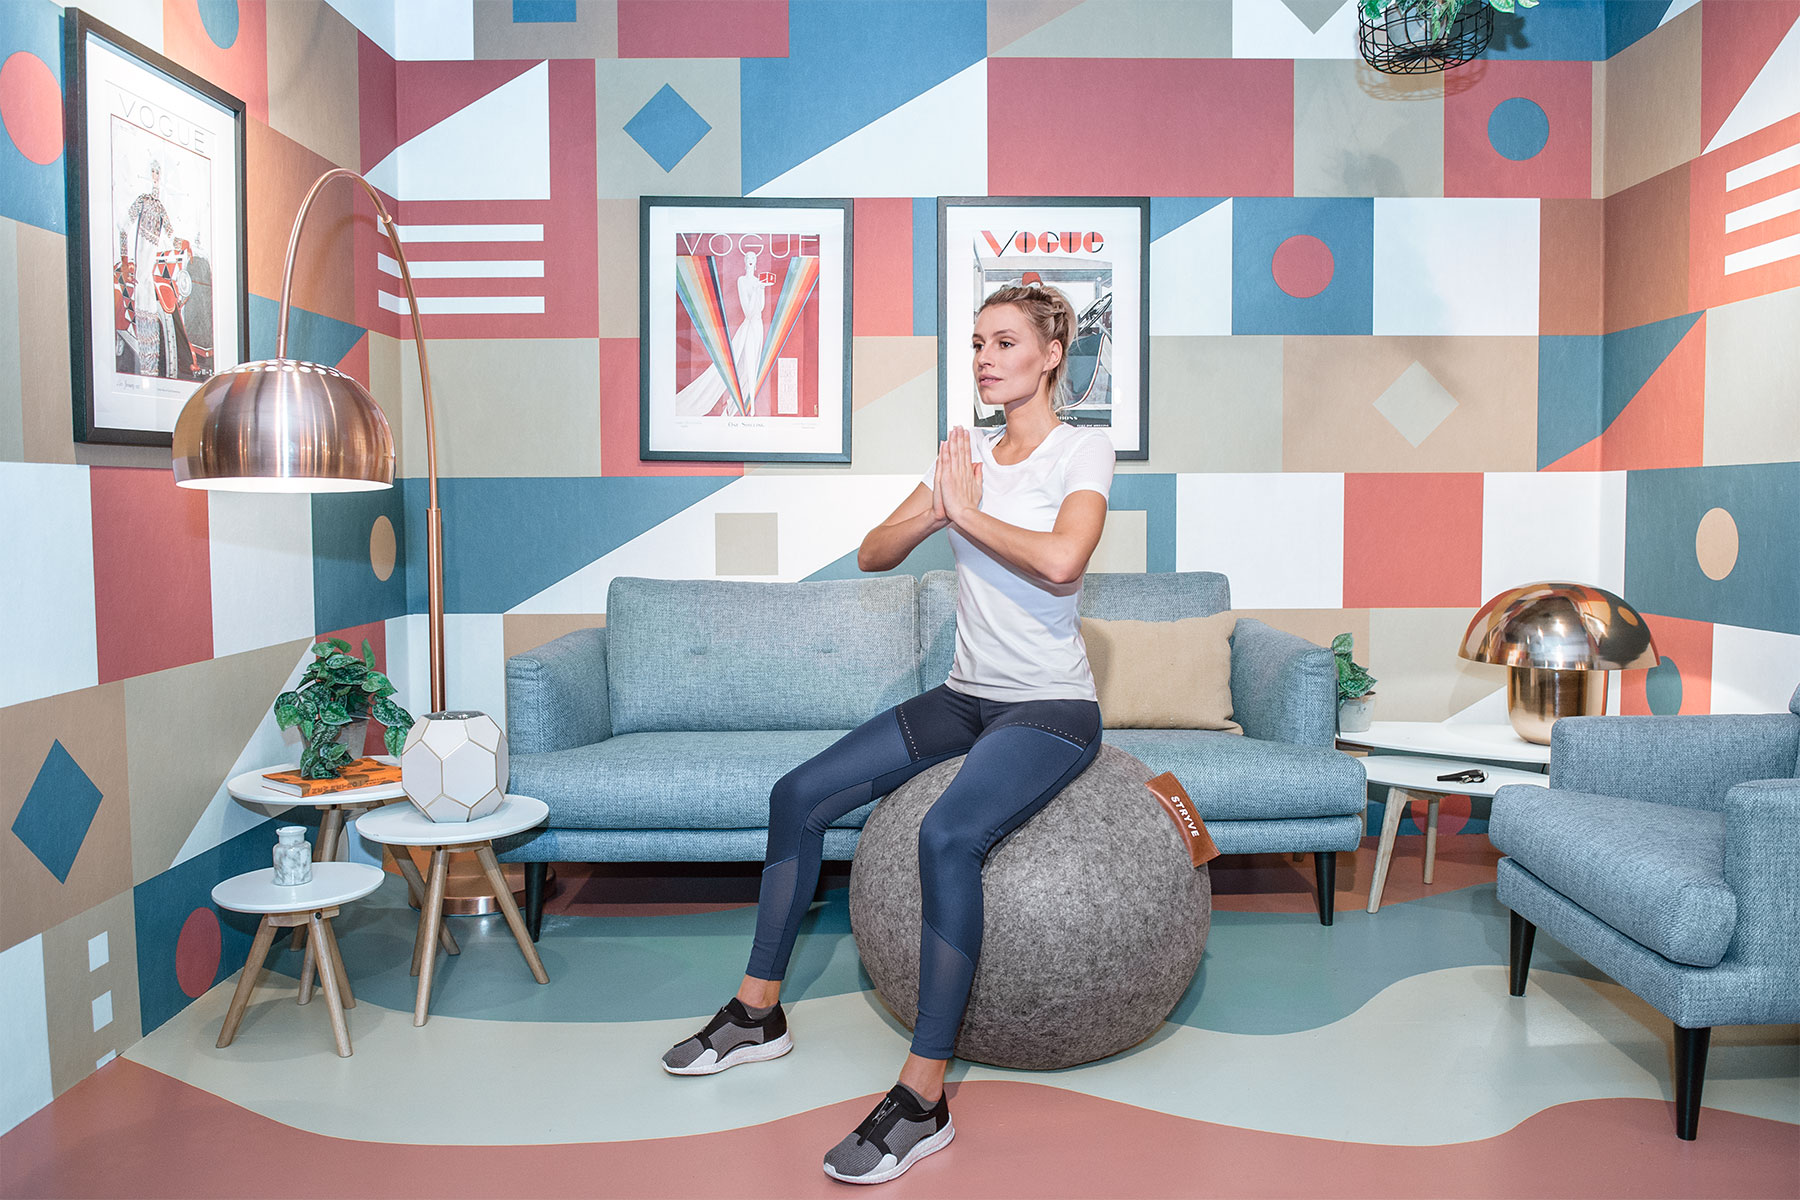 stryve-ball-produkt-home-living-lifestyle-design